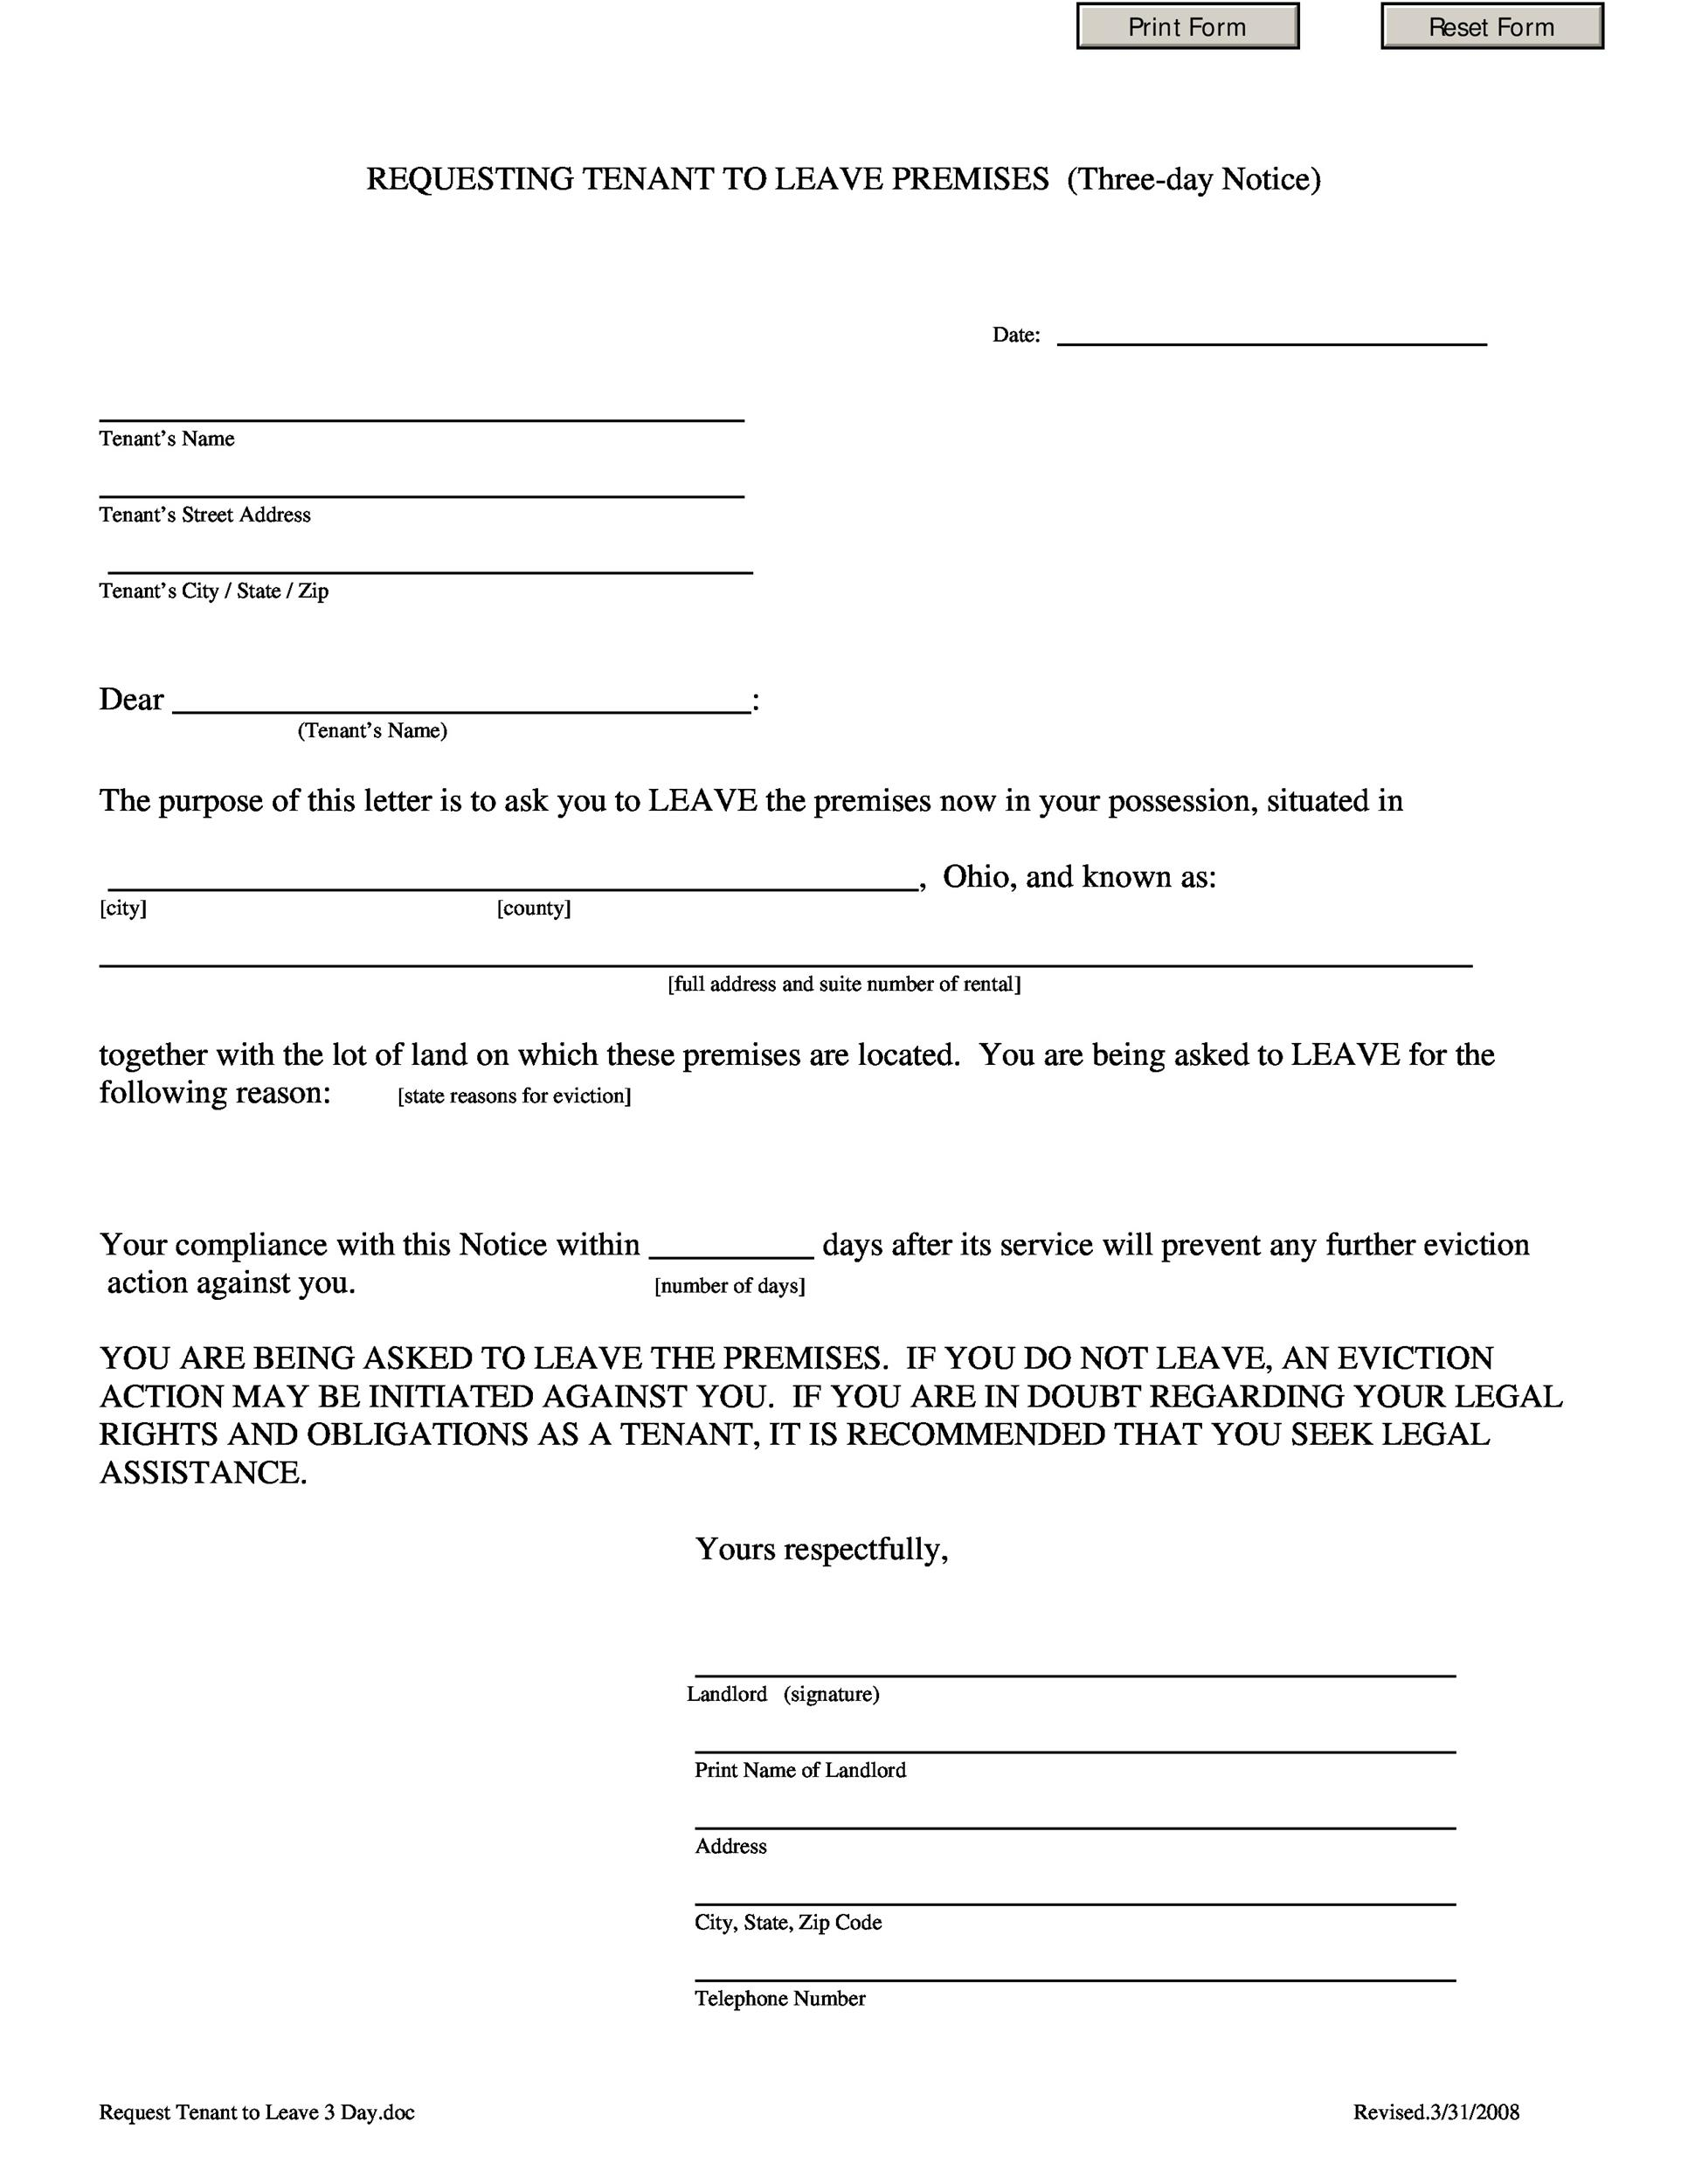 45 eviction notice templates lease termination letters free requesting tenant to leave premises spiritdancerdesigns